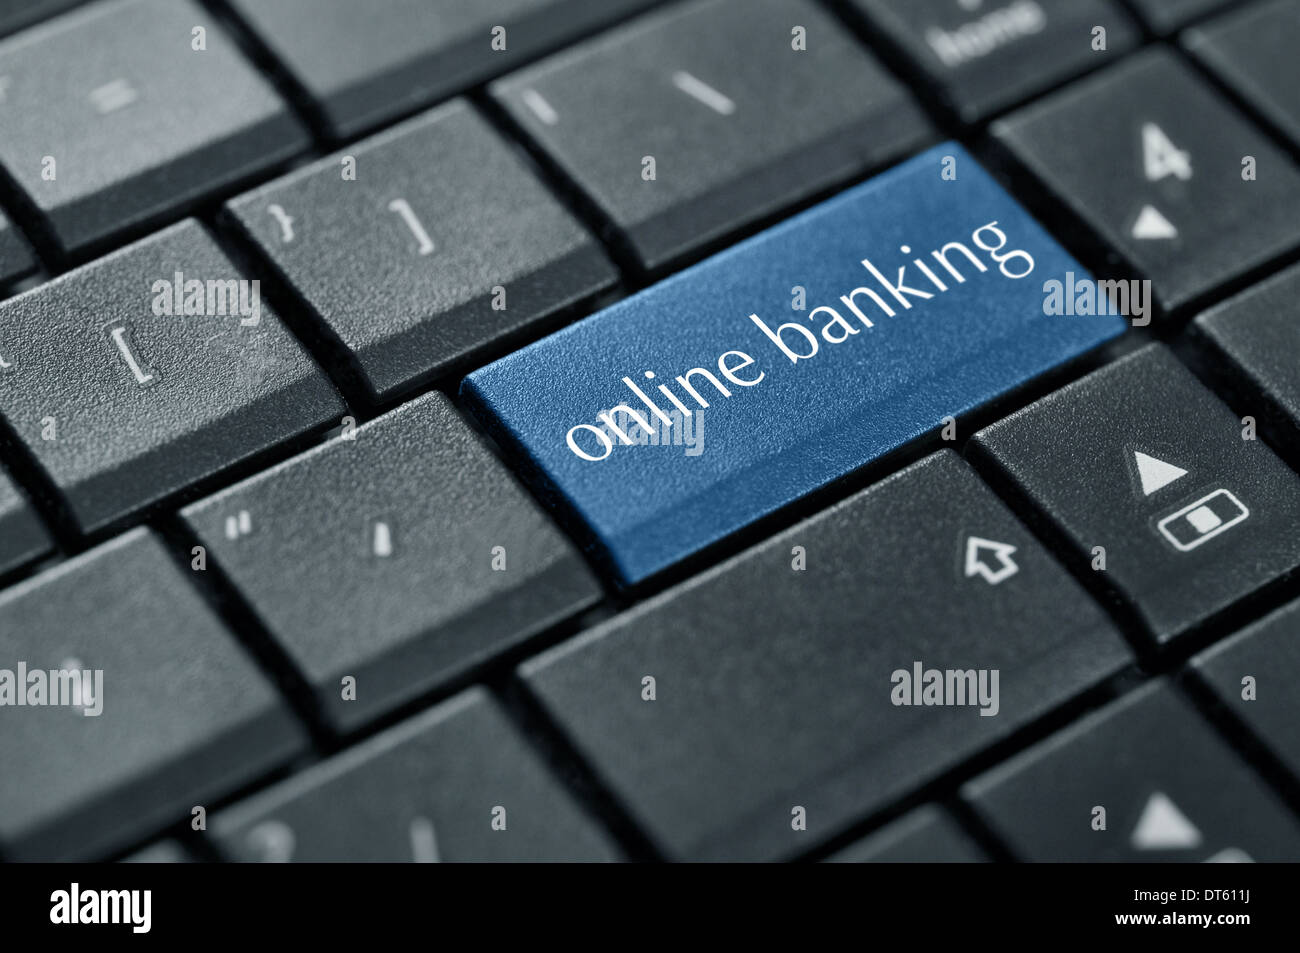 Concept of online banking. Word online banking on button of computer keyboard. - Stock Image